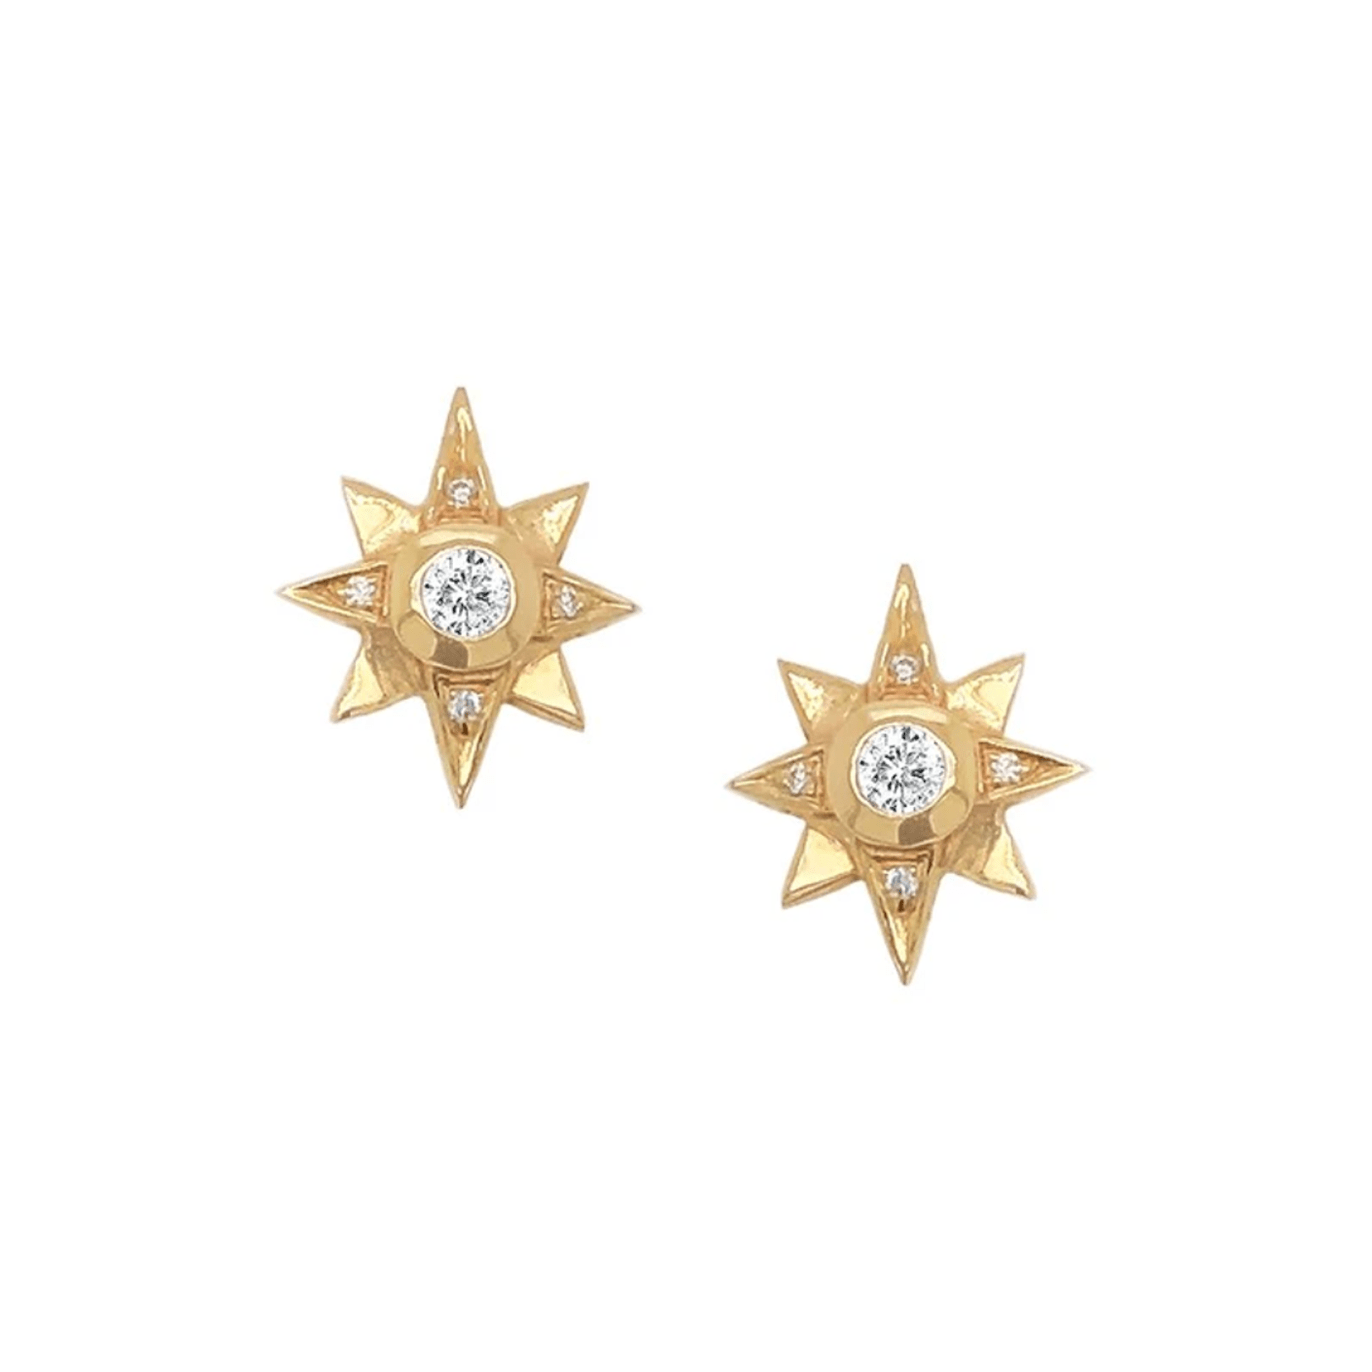 North Star Diamond Earrings